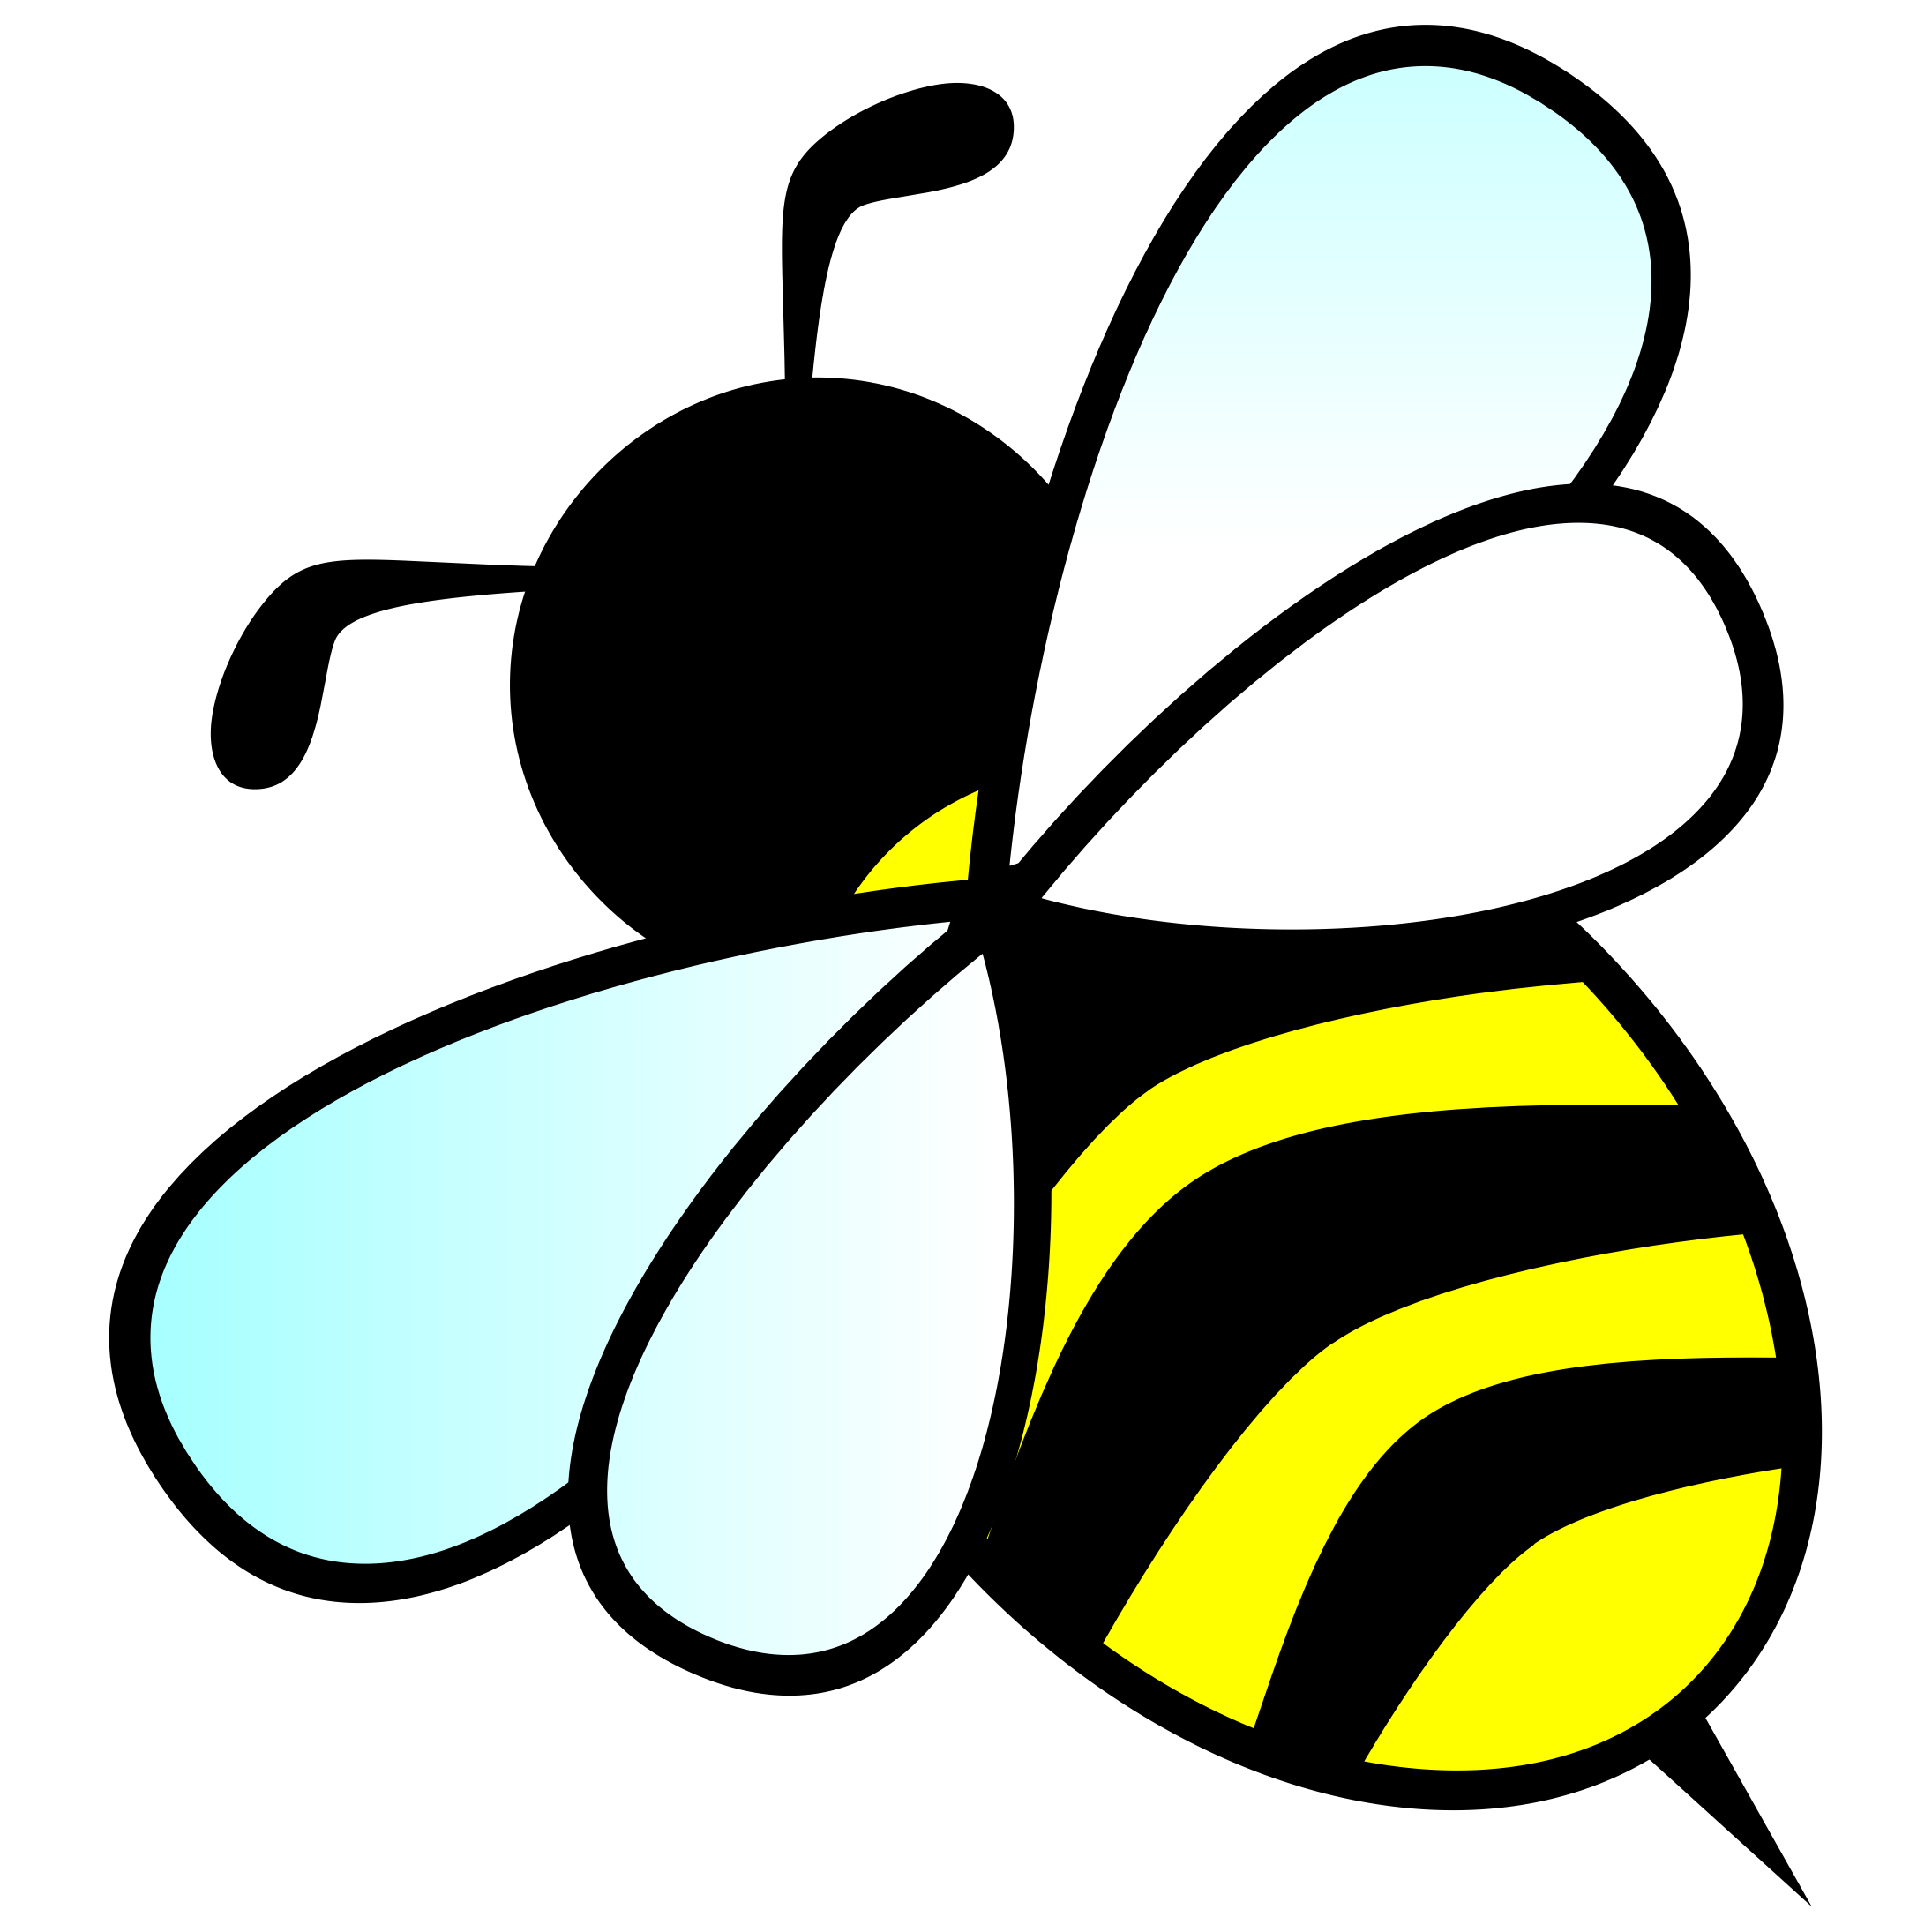 Bumblebee clipart rustic. Bee by anarres a